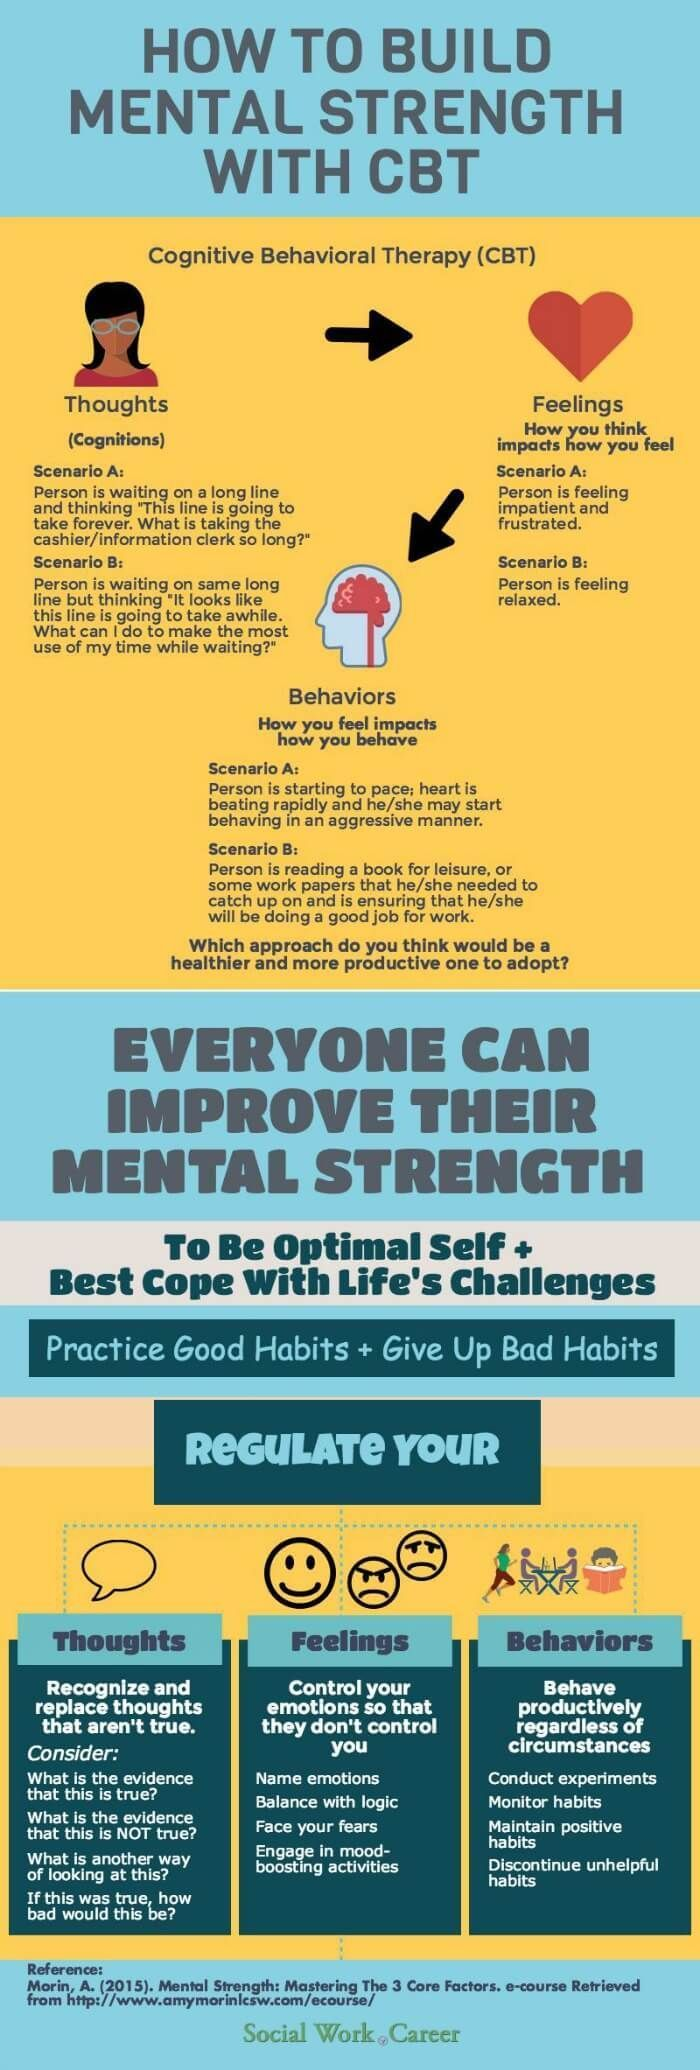 How to Build Mental Strength (Even If You�re Overwhelmed) #AmyMorin #resilience #CBT Cognitive Behavioral Therapy